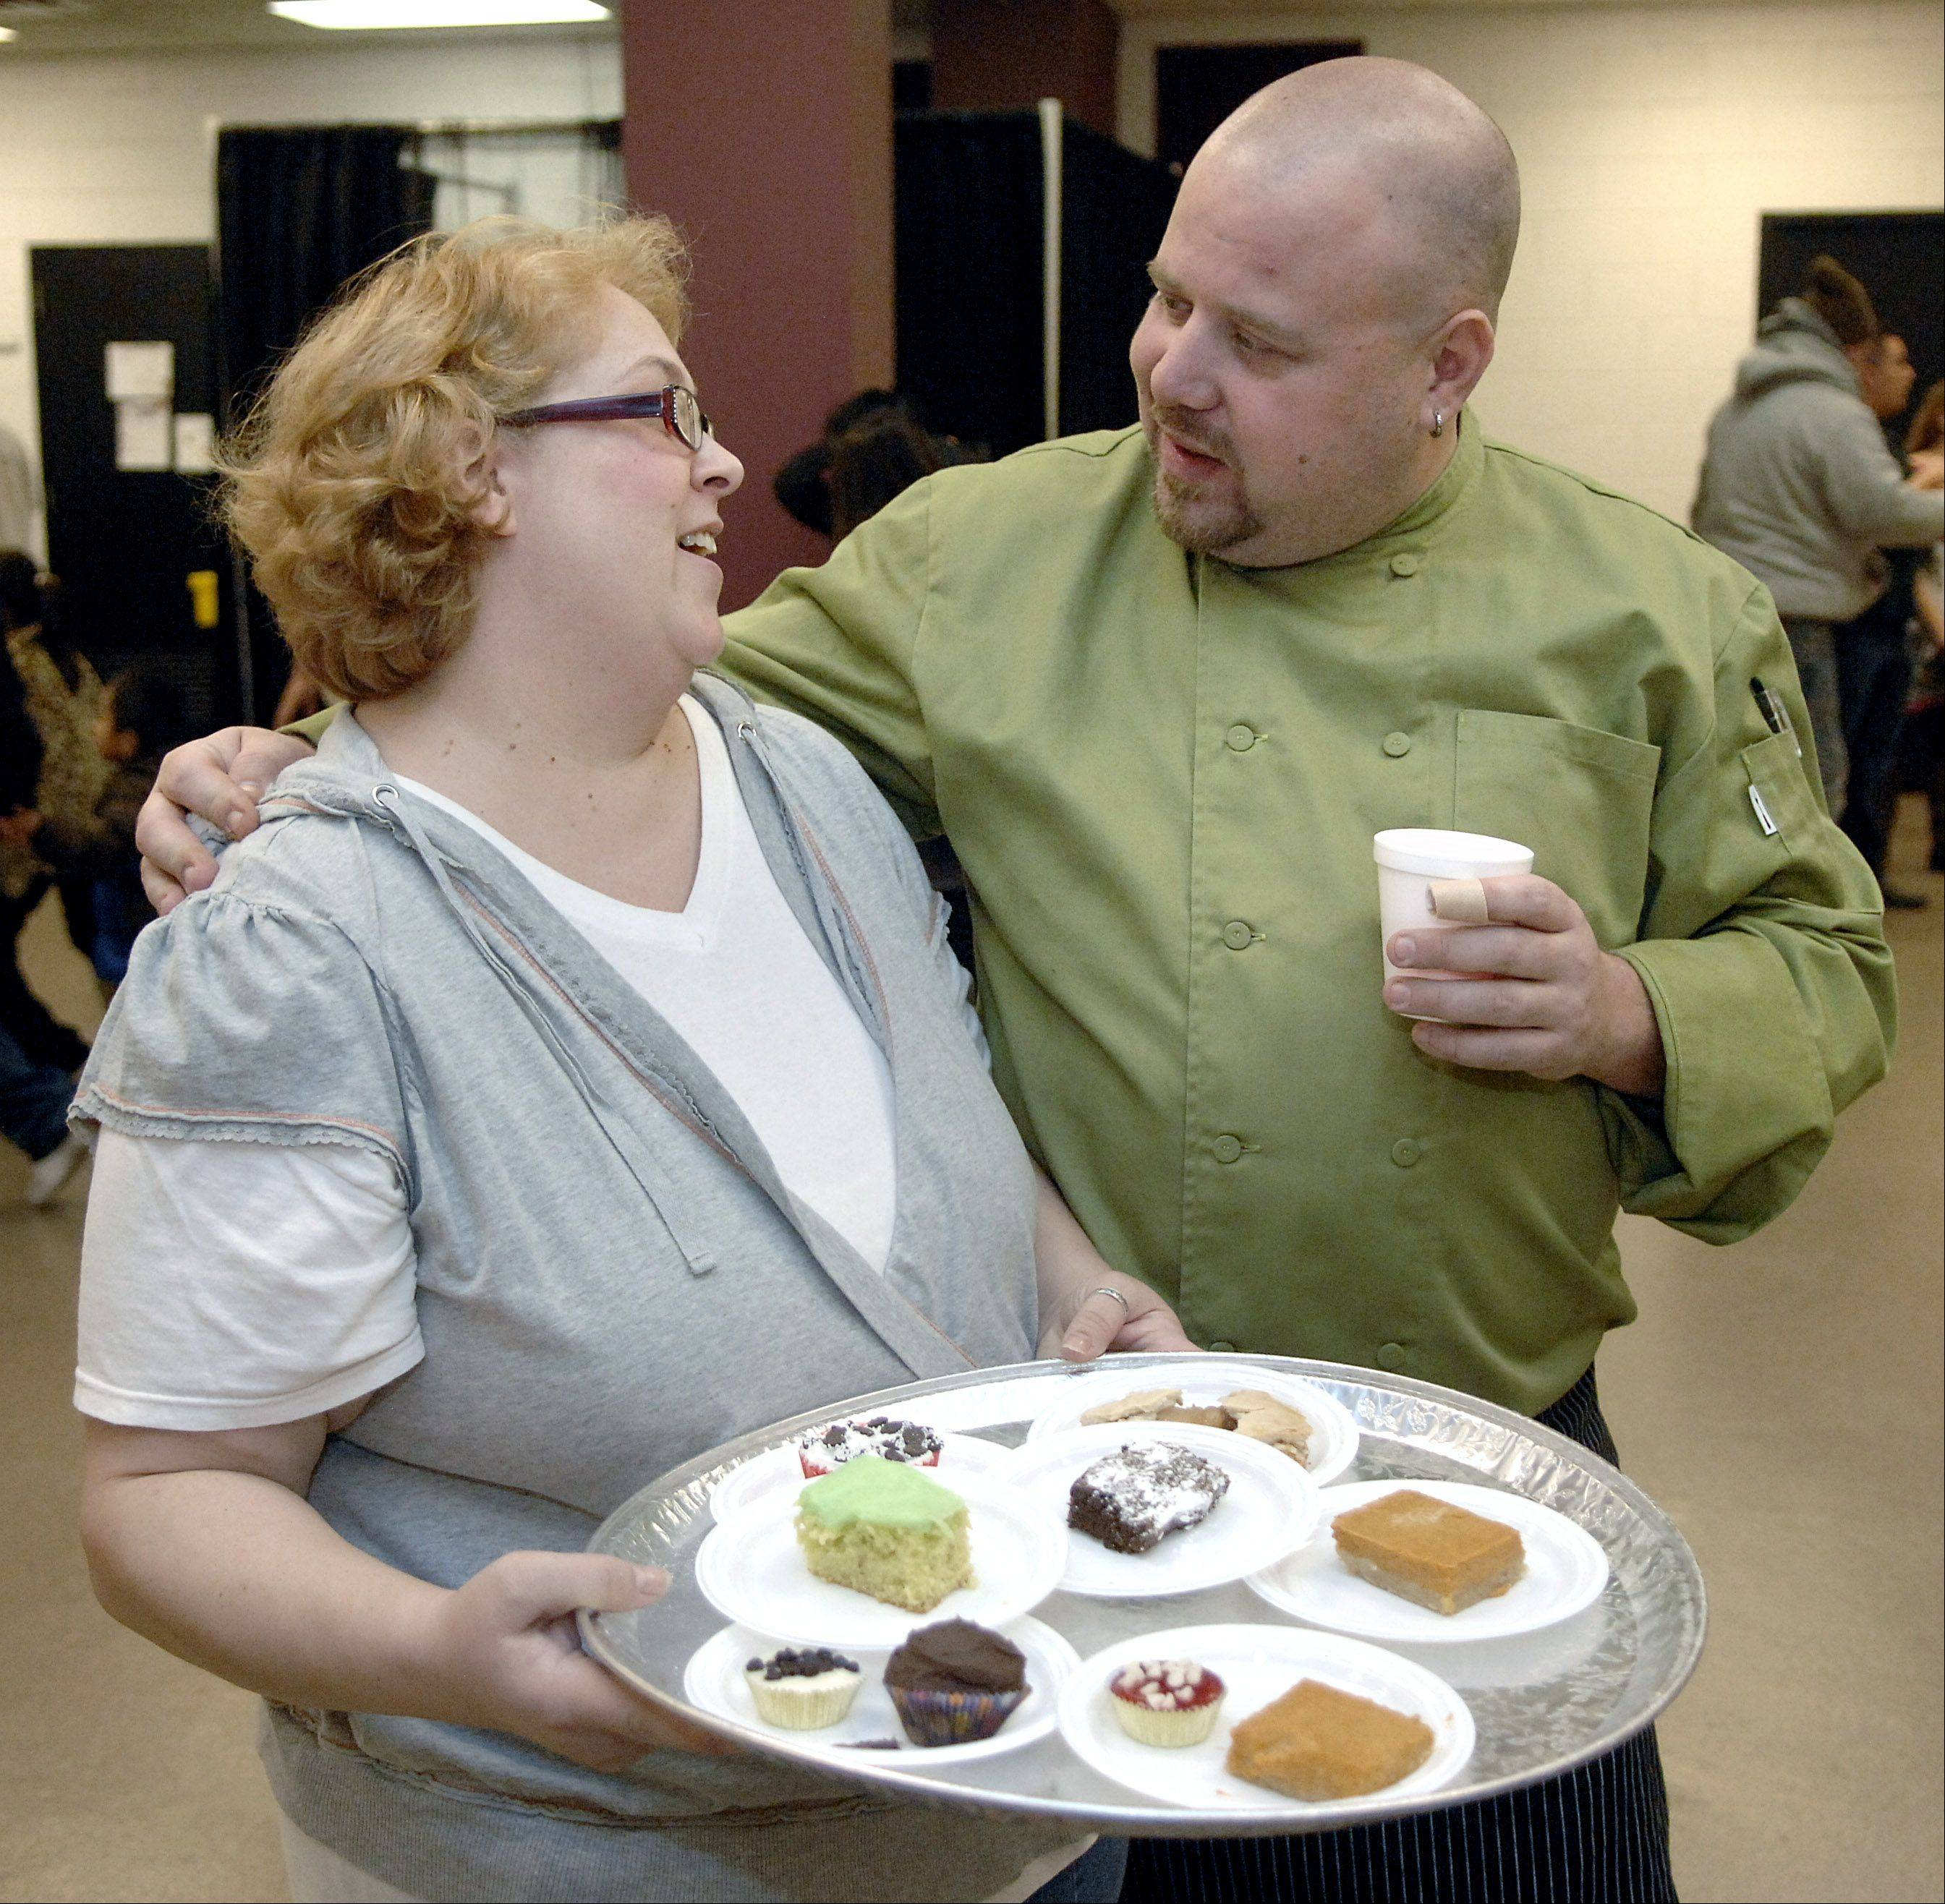 Volunteer Angela Kibbe of Elgin greets Thanksgiving dinner organizer and chef Jeff Turner of In the Neighborhood Deli while serving desserts at the Hemmens Cultural Center during a free community meal.